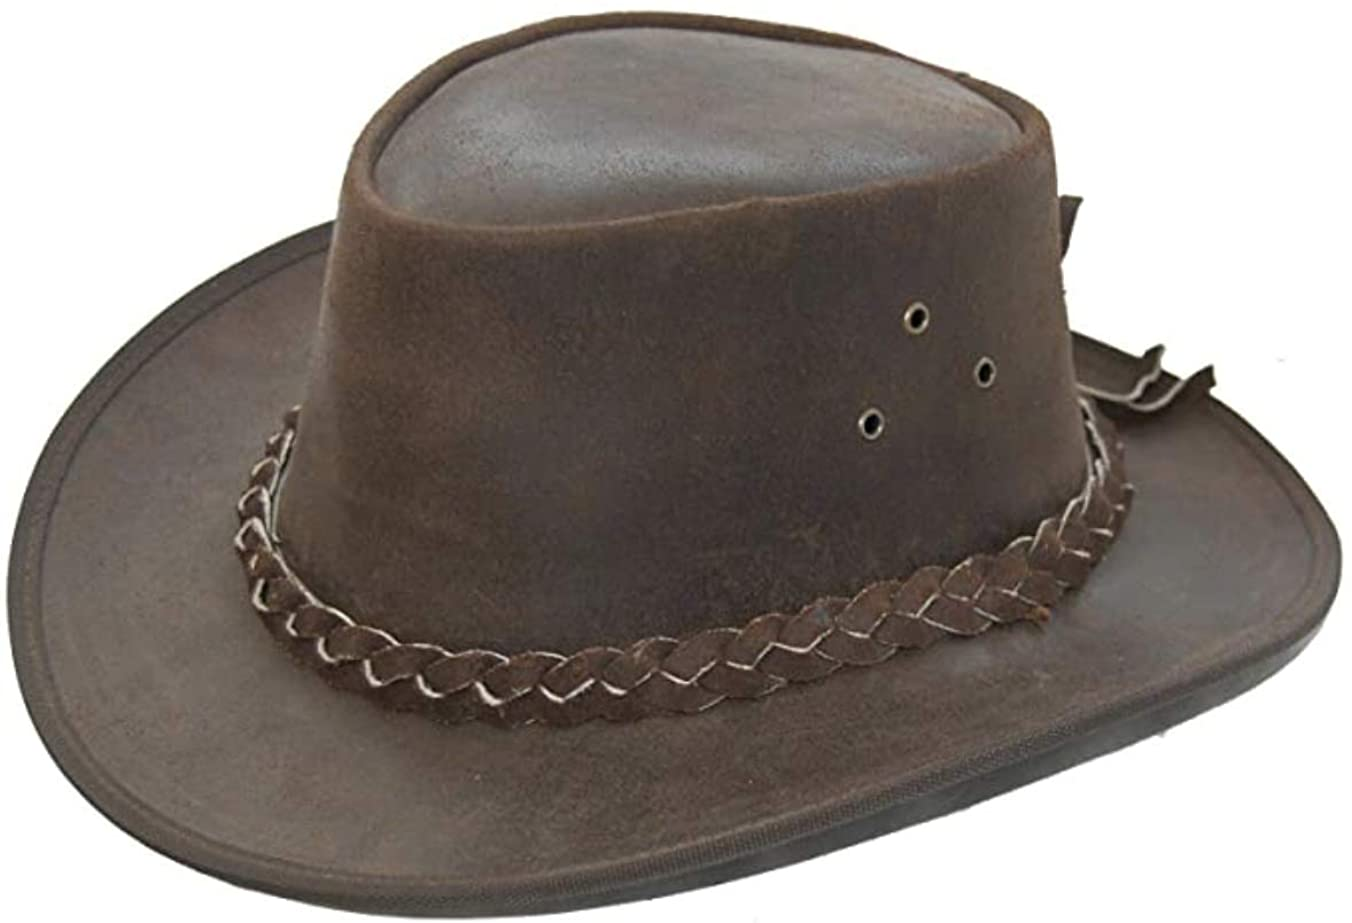 Lifestyle Clothing Australian Real Cracked Leather Cowboy Hat Crushable Brown Cow Hide Distressed Leather Hat Chin Strap Mens Womens M